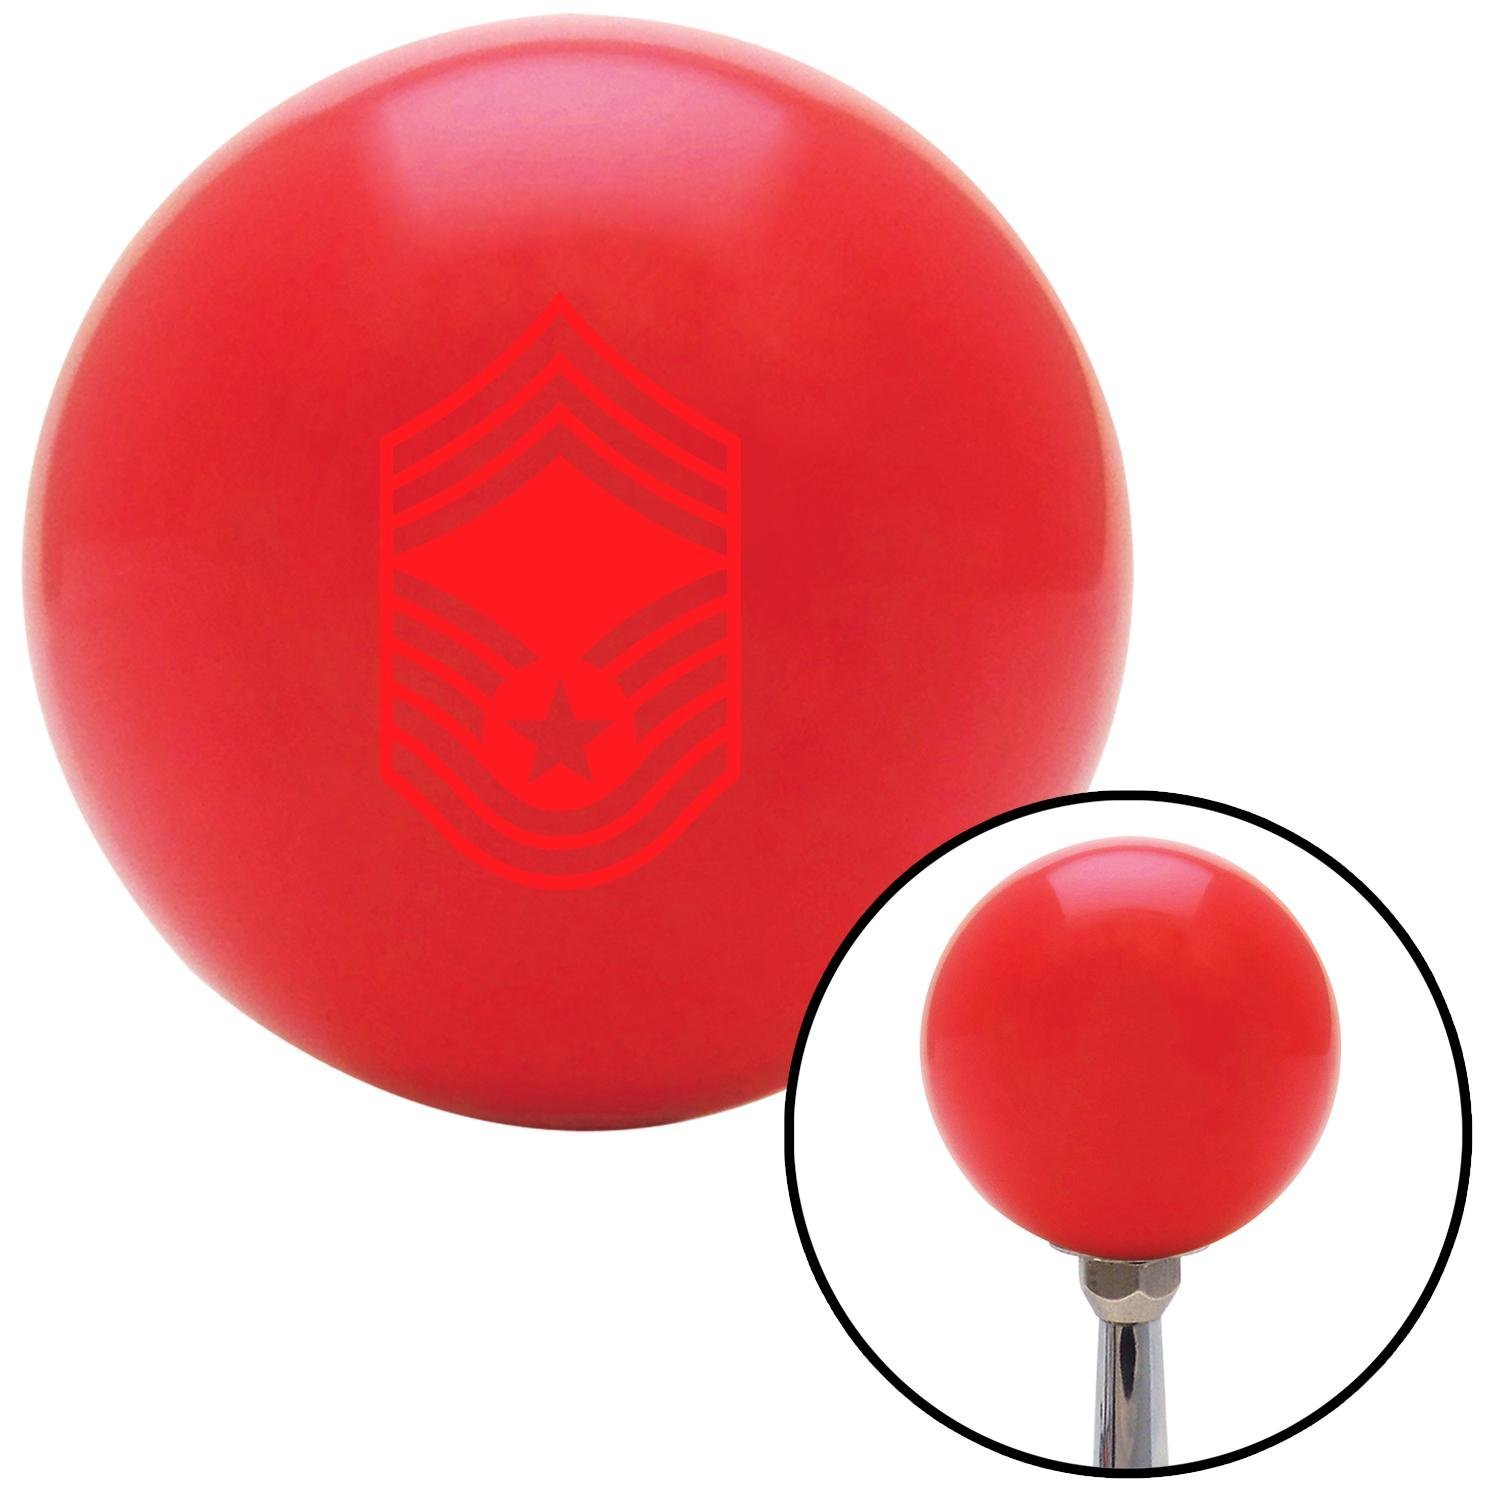 American Shifter 243723 Red Flame Metal Flake Shift Knob with M16 x 1.5 Insert White and Blue Pinstripe 1